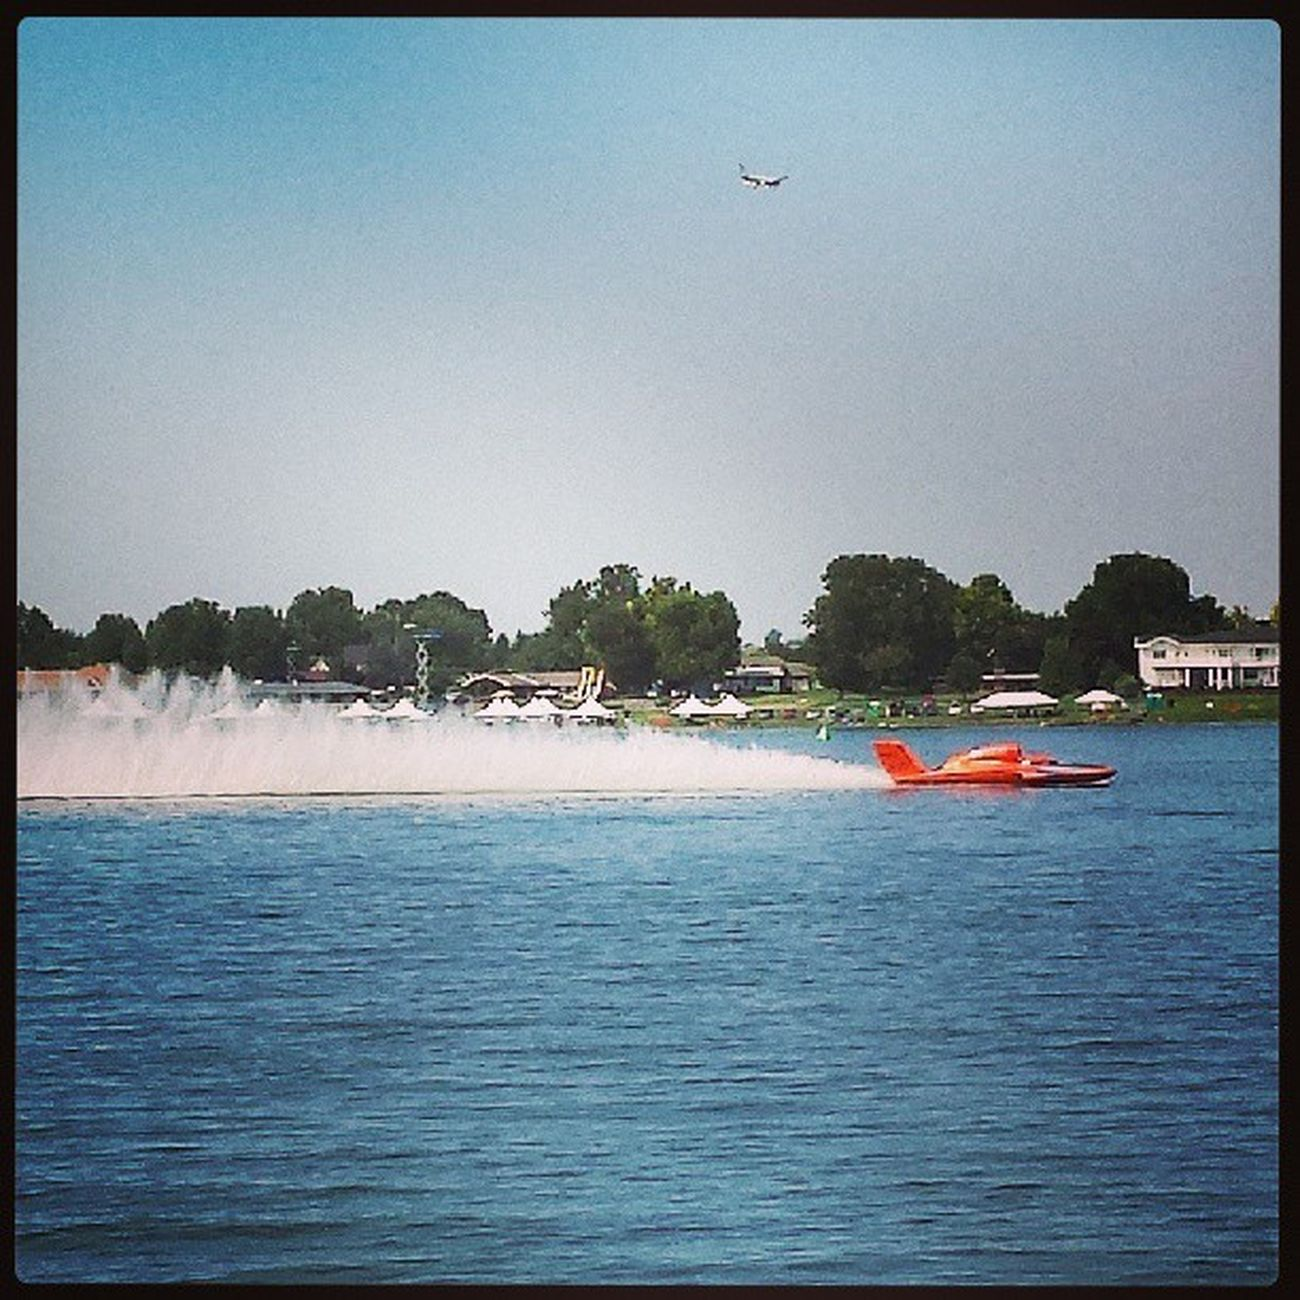 Hydroplane Races for the next 3 days TriCities